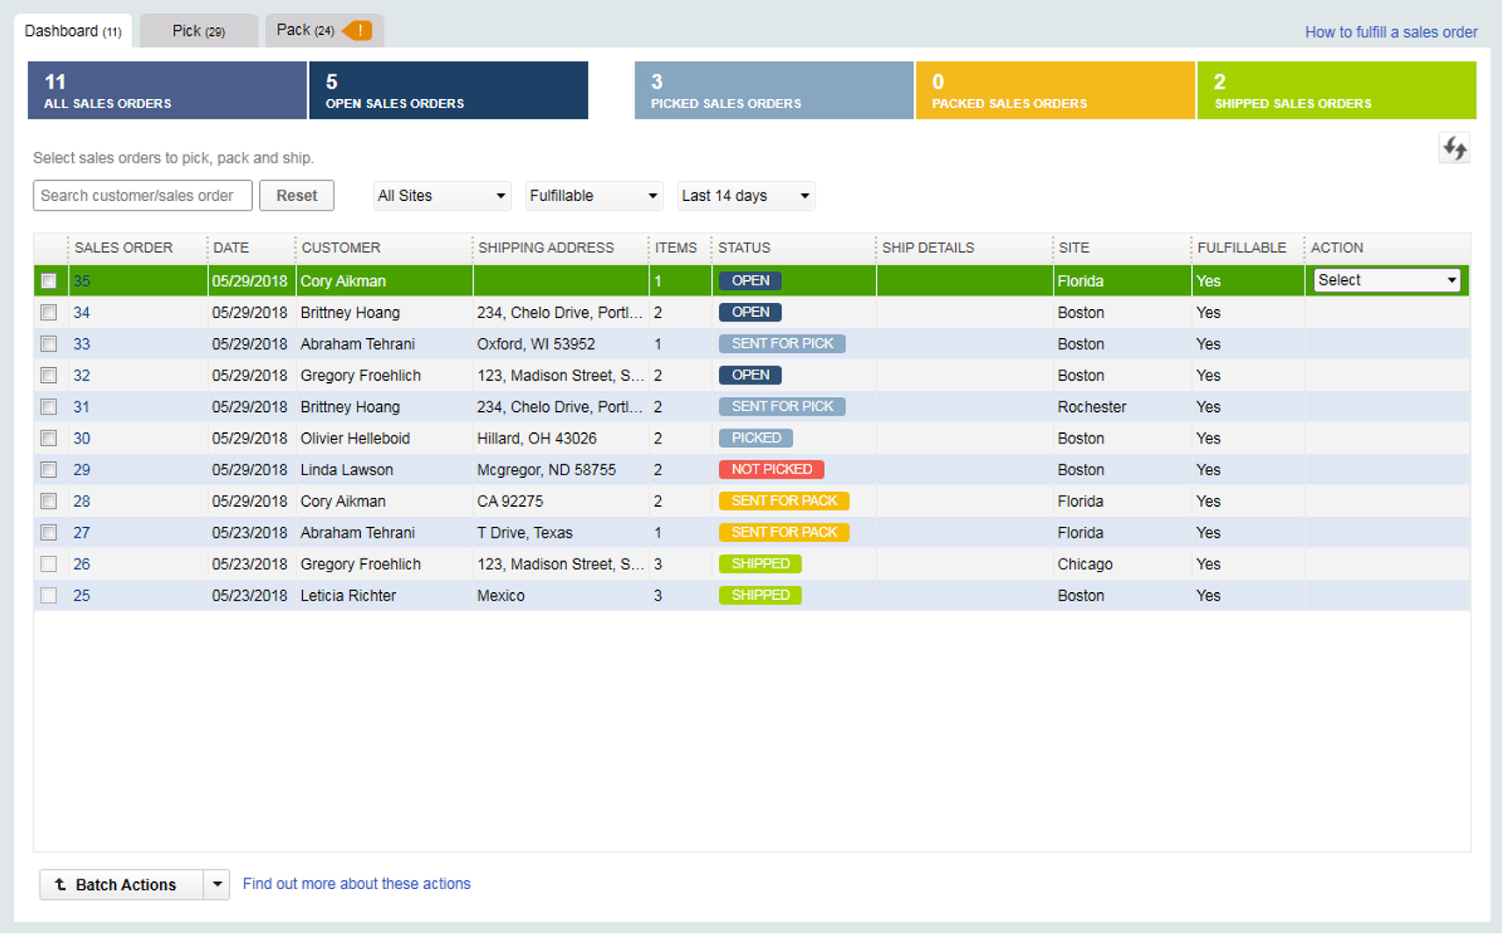 With QuickBooks Enterprise, users can manage pick, pack and ship for all their sales orders